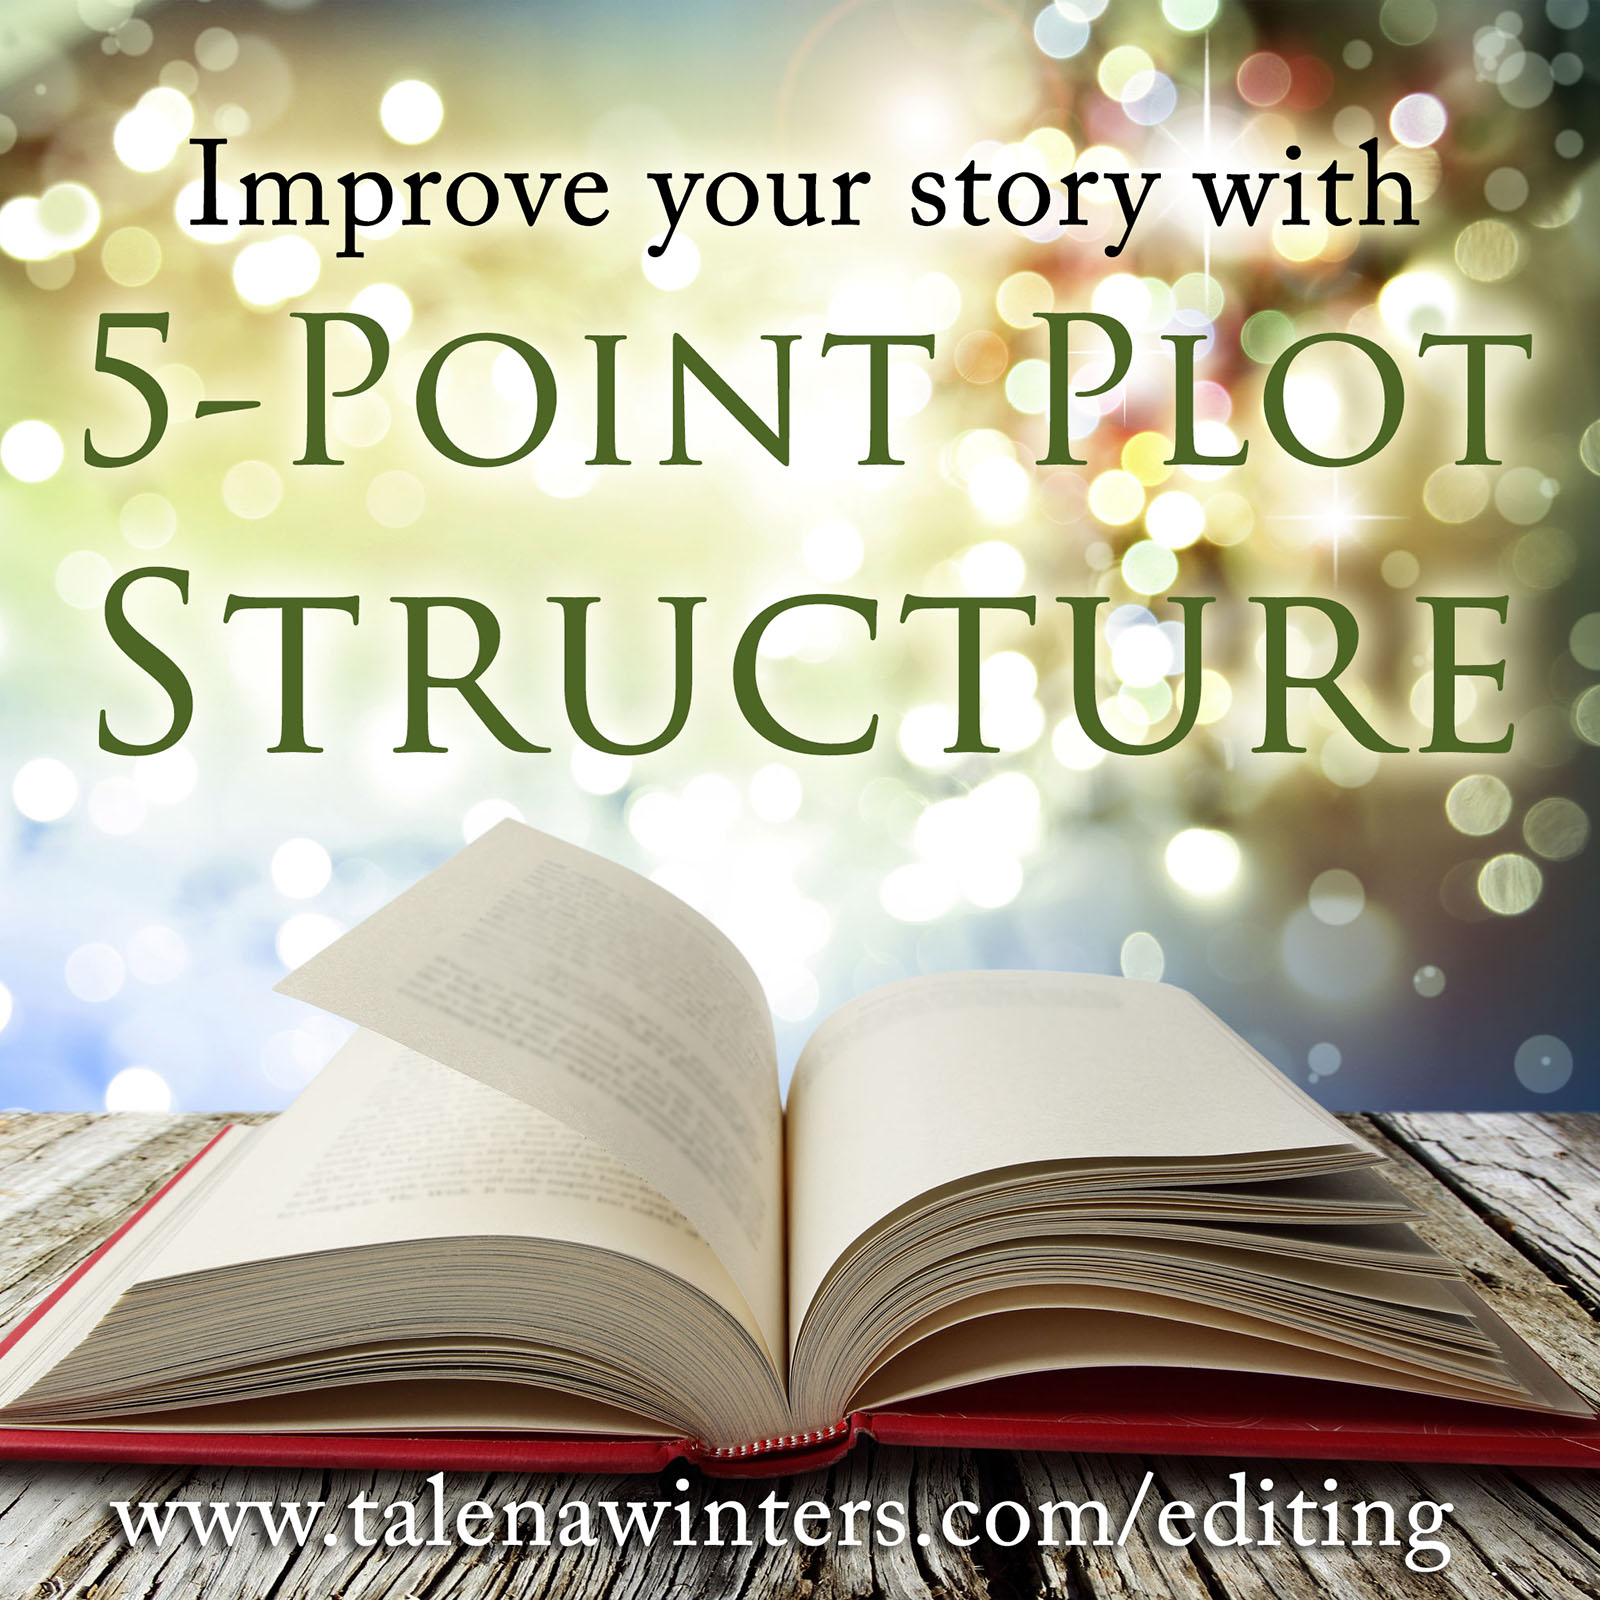 Improve your story with 5-Point Plot Structure - free download from talenawinters.com/editing.  Whether you are a pantser or a plotter, every story needs to follow a basic outline of rising tension to a satisfactory climax. The 5-Point Plot Structure is one of the most basic frameworks to guide your story.  Talena Winters breaks down the 5-Point Plot Structure, then uses it to analyze the movie  Moana , with tips for relating this to other genres. The structure can be applied to short stories, novels, chapters, episodes, and series. It is a great tool for writers and authors, whether self-published or traditionally published, to improve their writing.